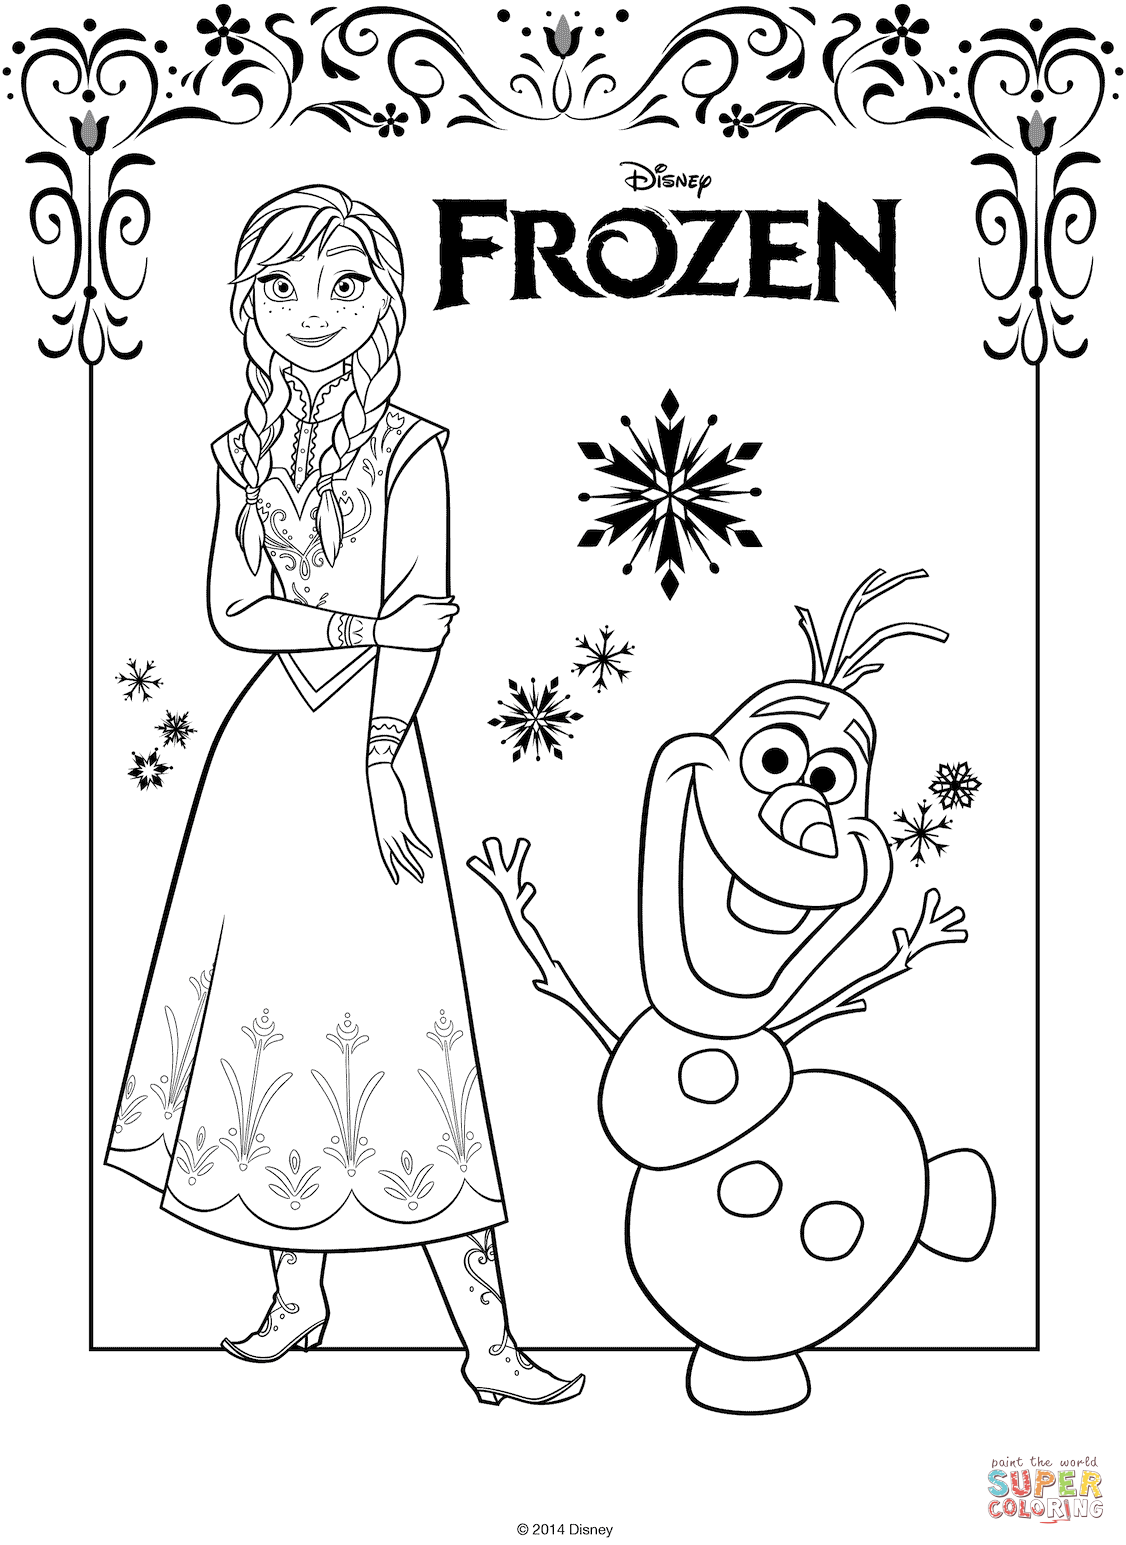 The Frozen Coloring Pages